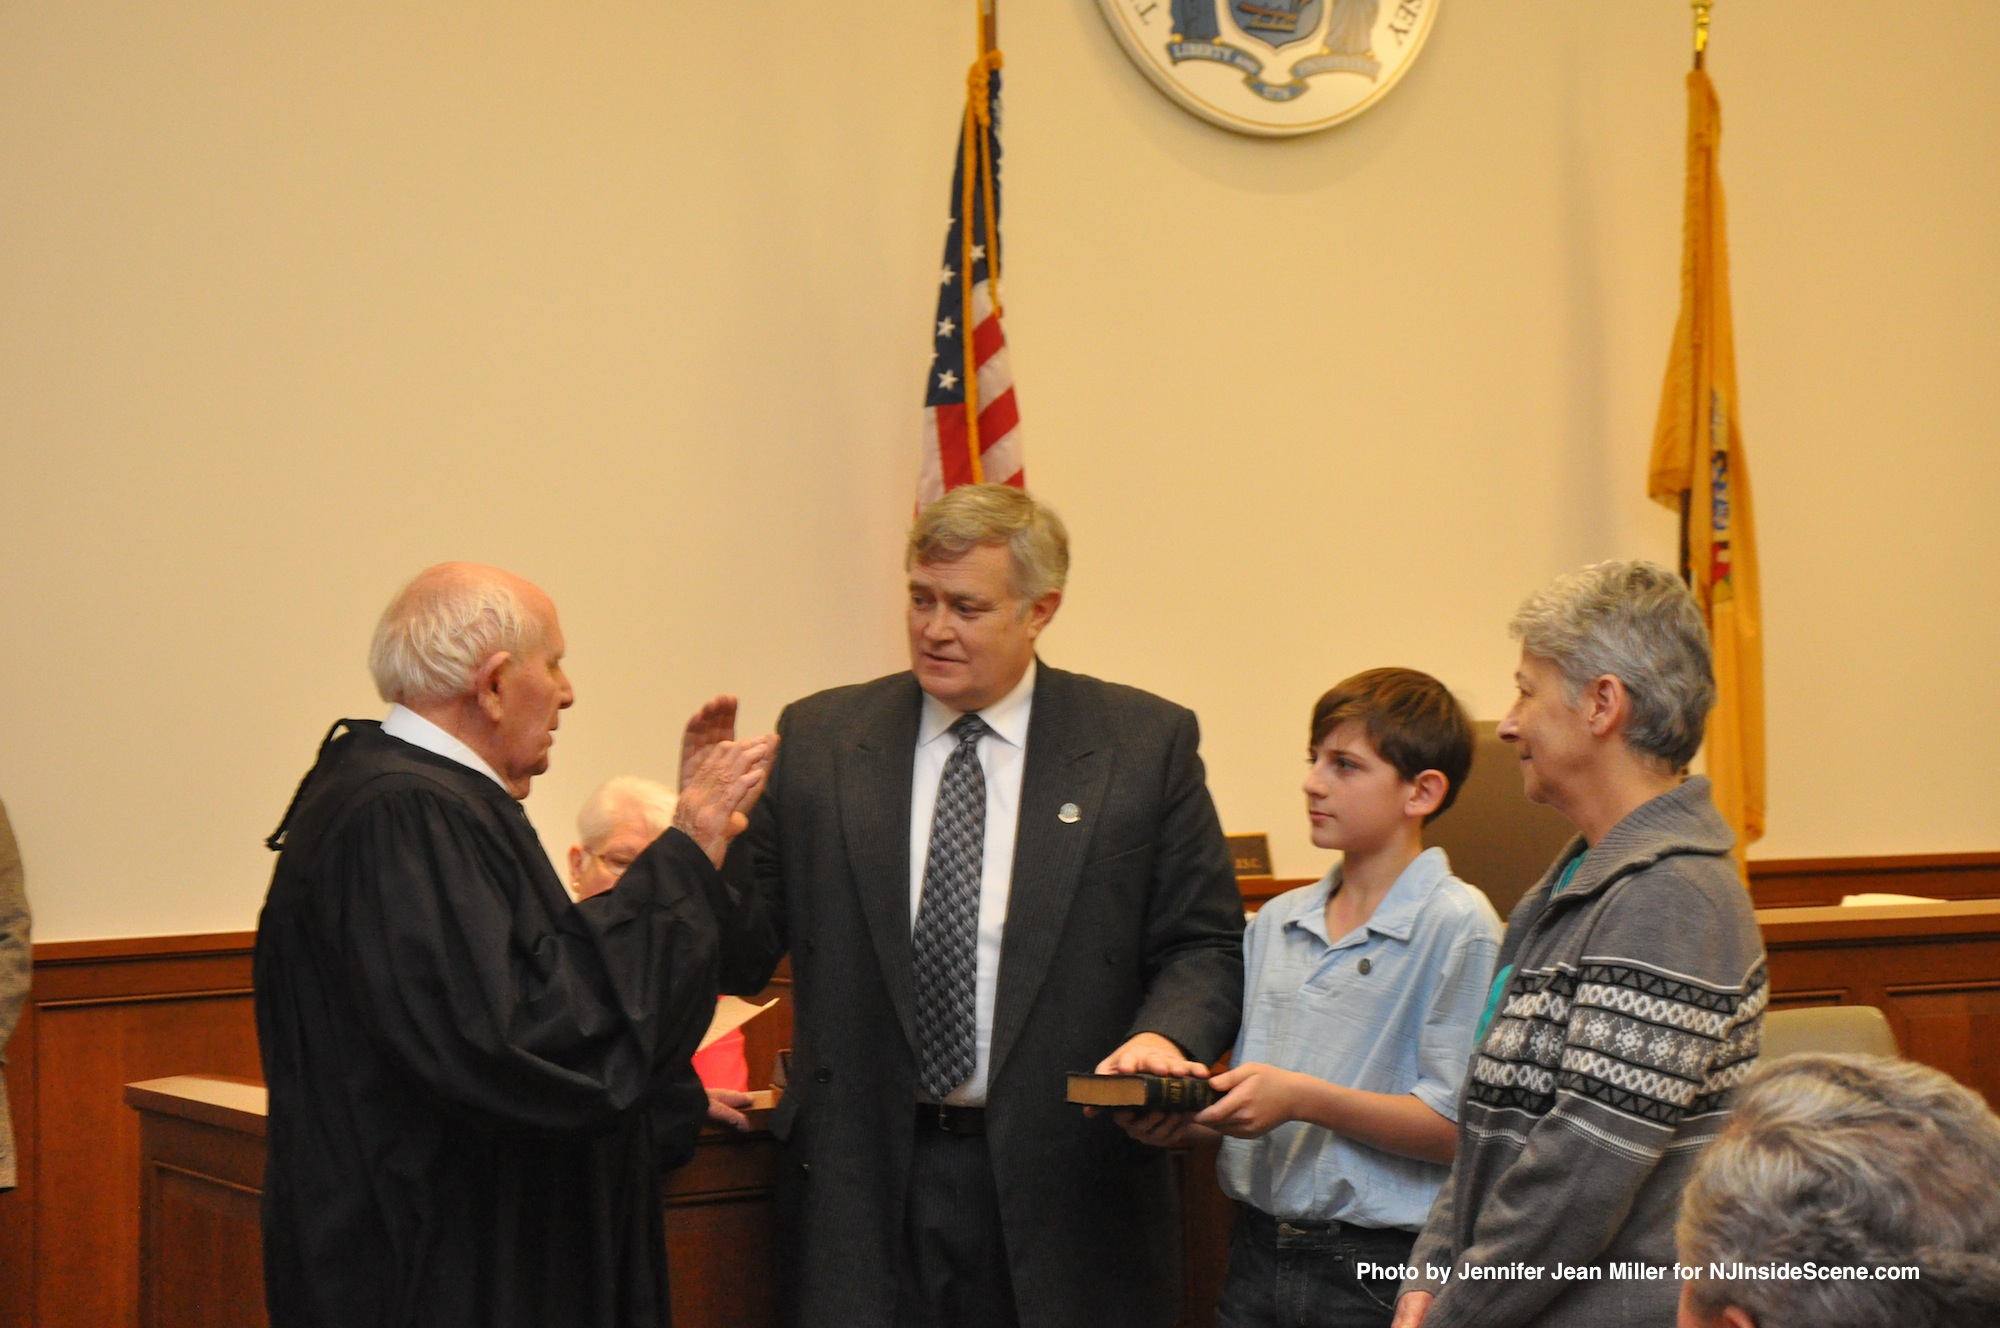 Judge Frederic Weber swears in George Graham, while Graham's wife, Gail, and grandson, Seth, look on.